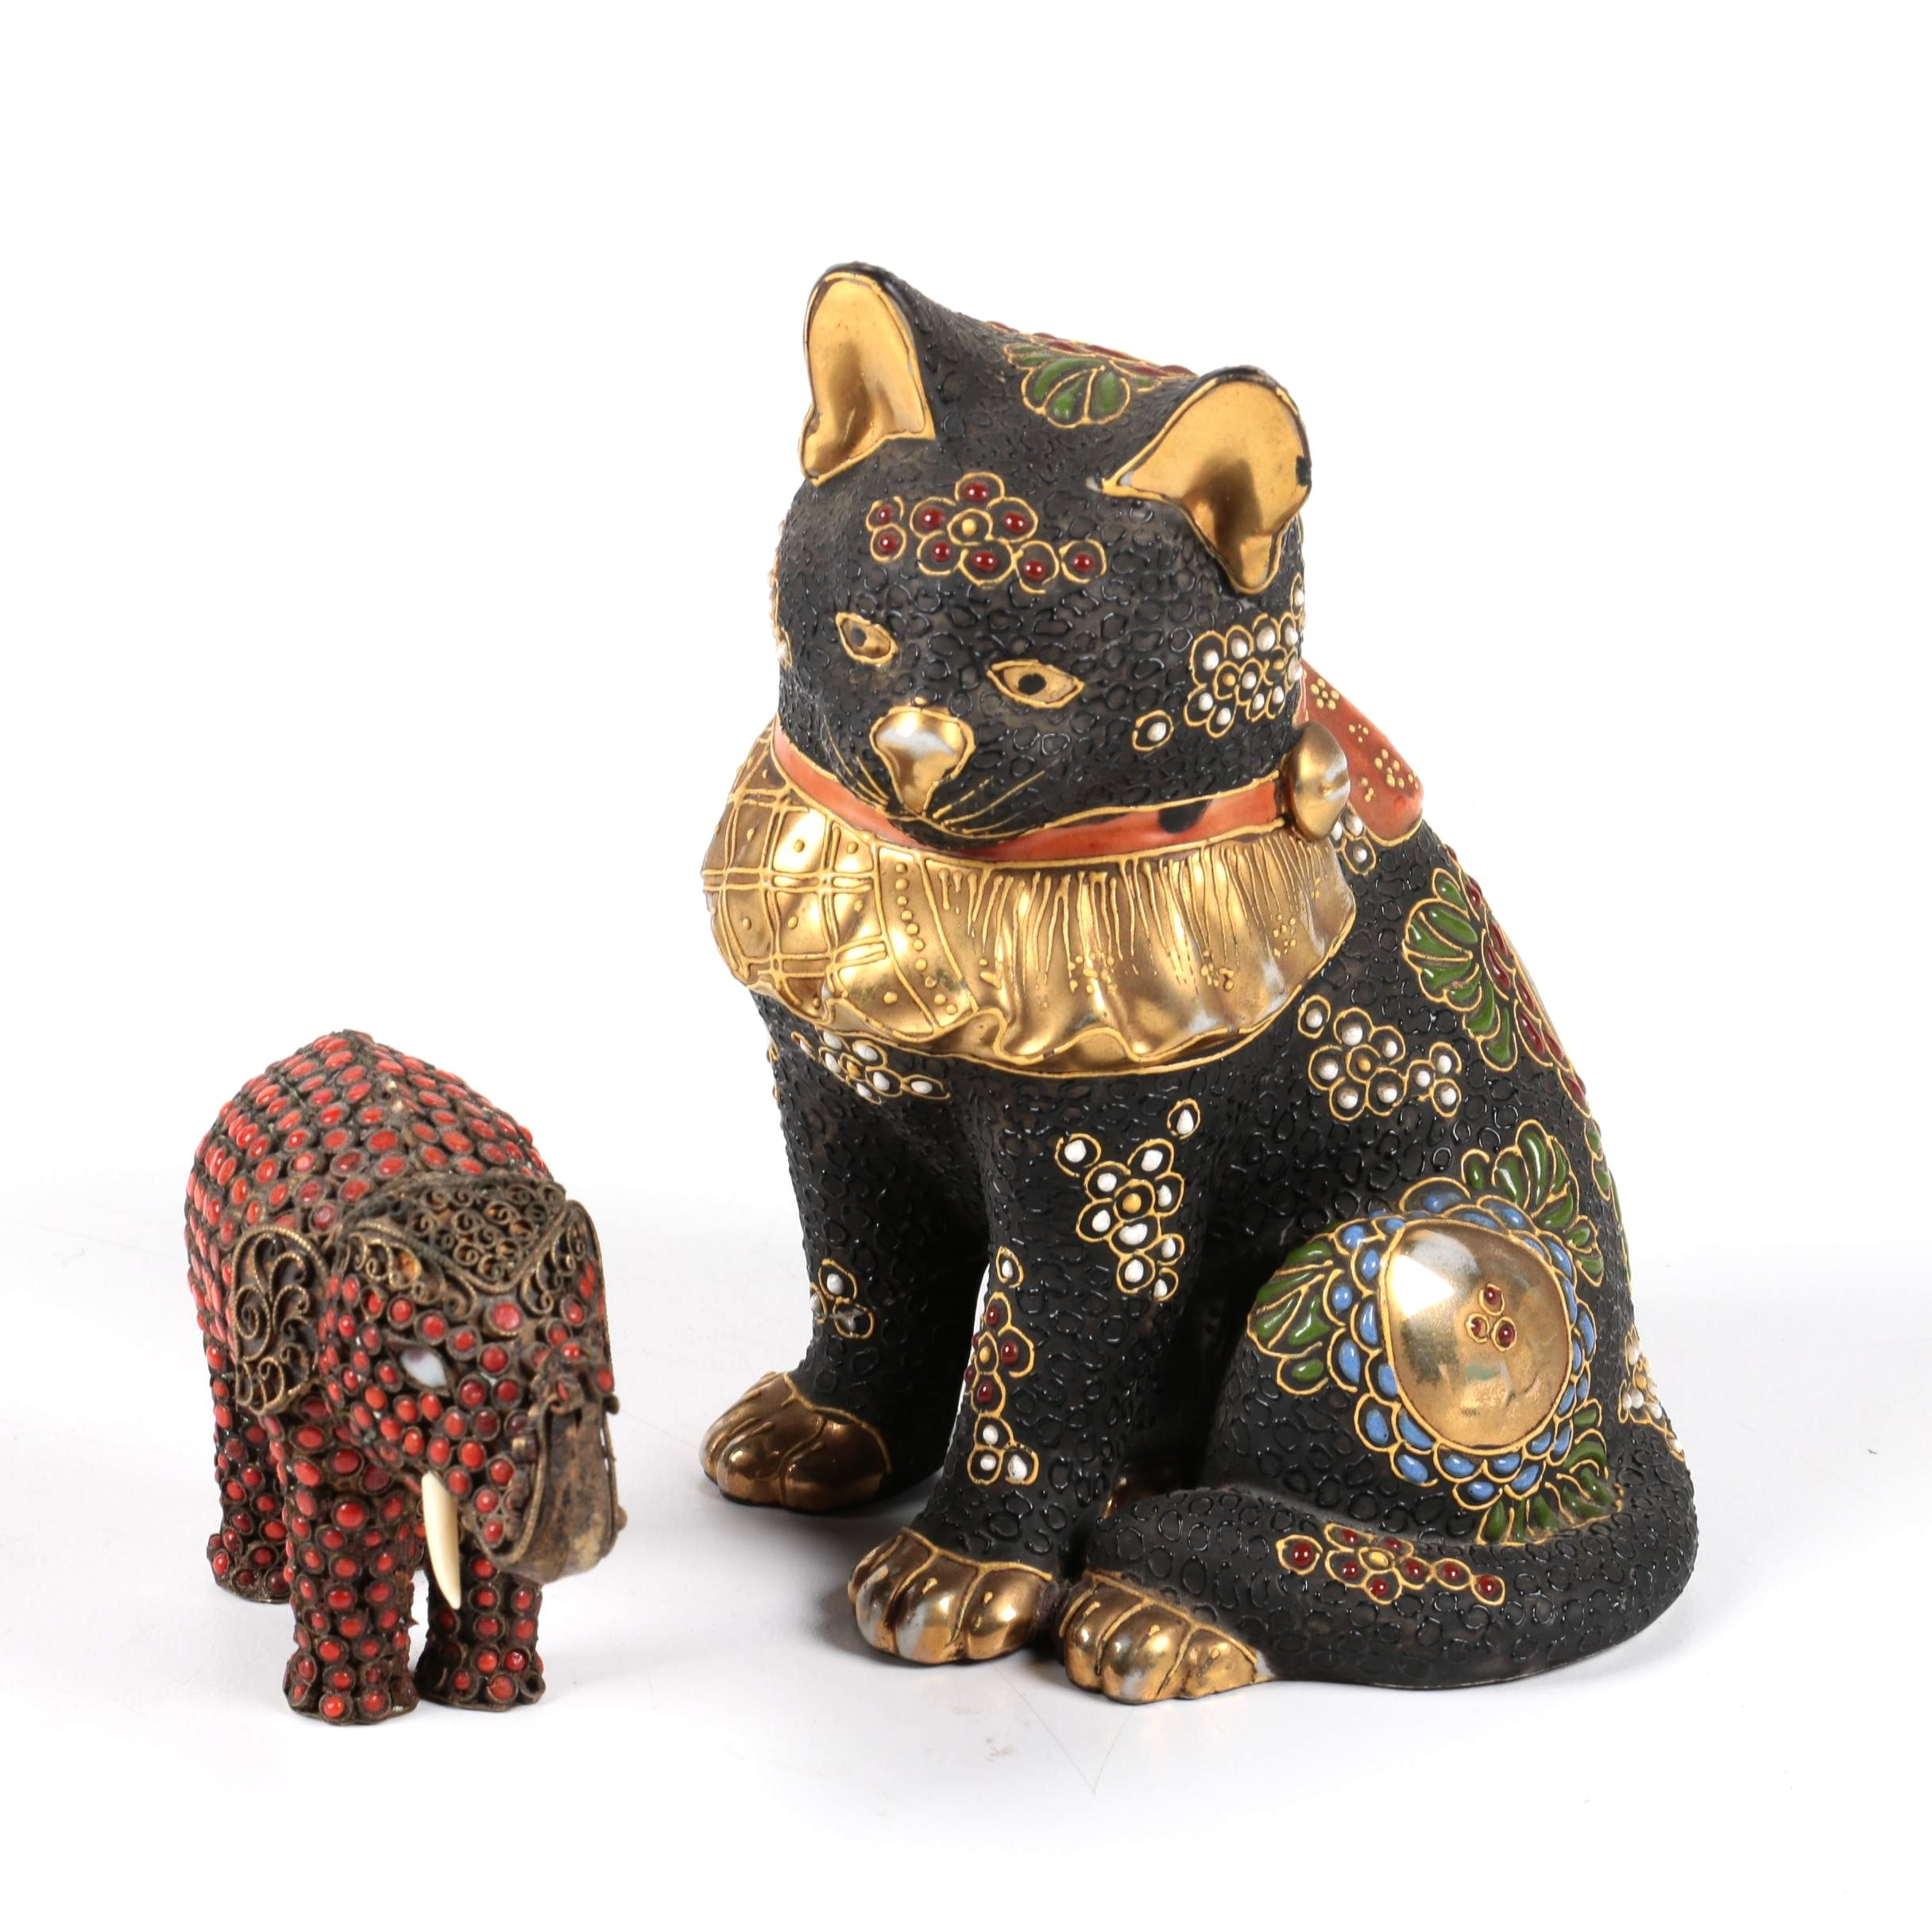 Japanese Ceramic Cat and Tibetan Style Brass Elephant Figures